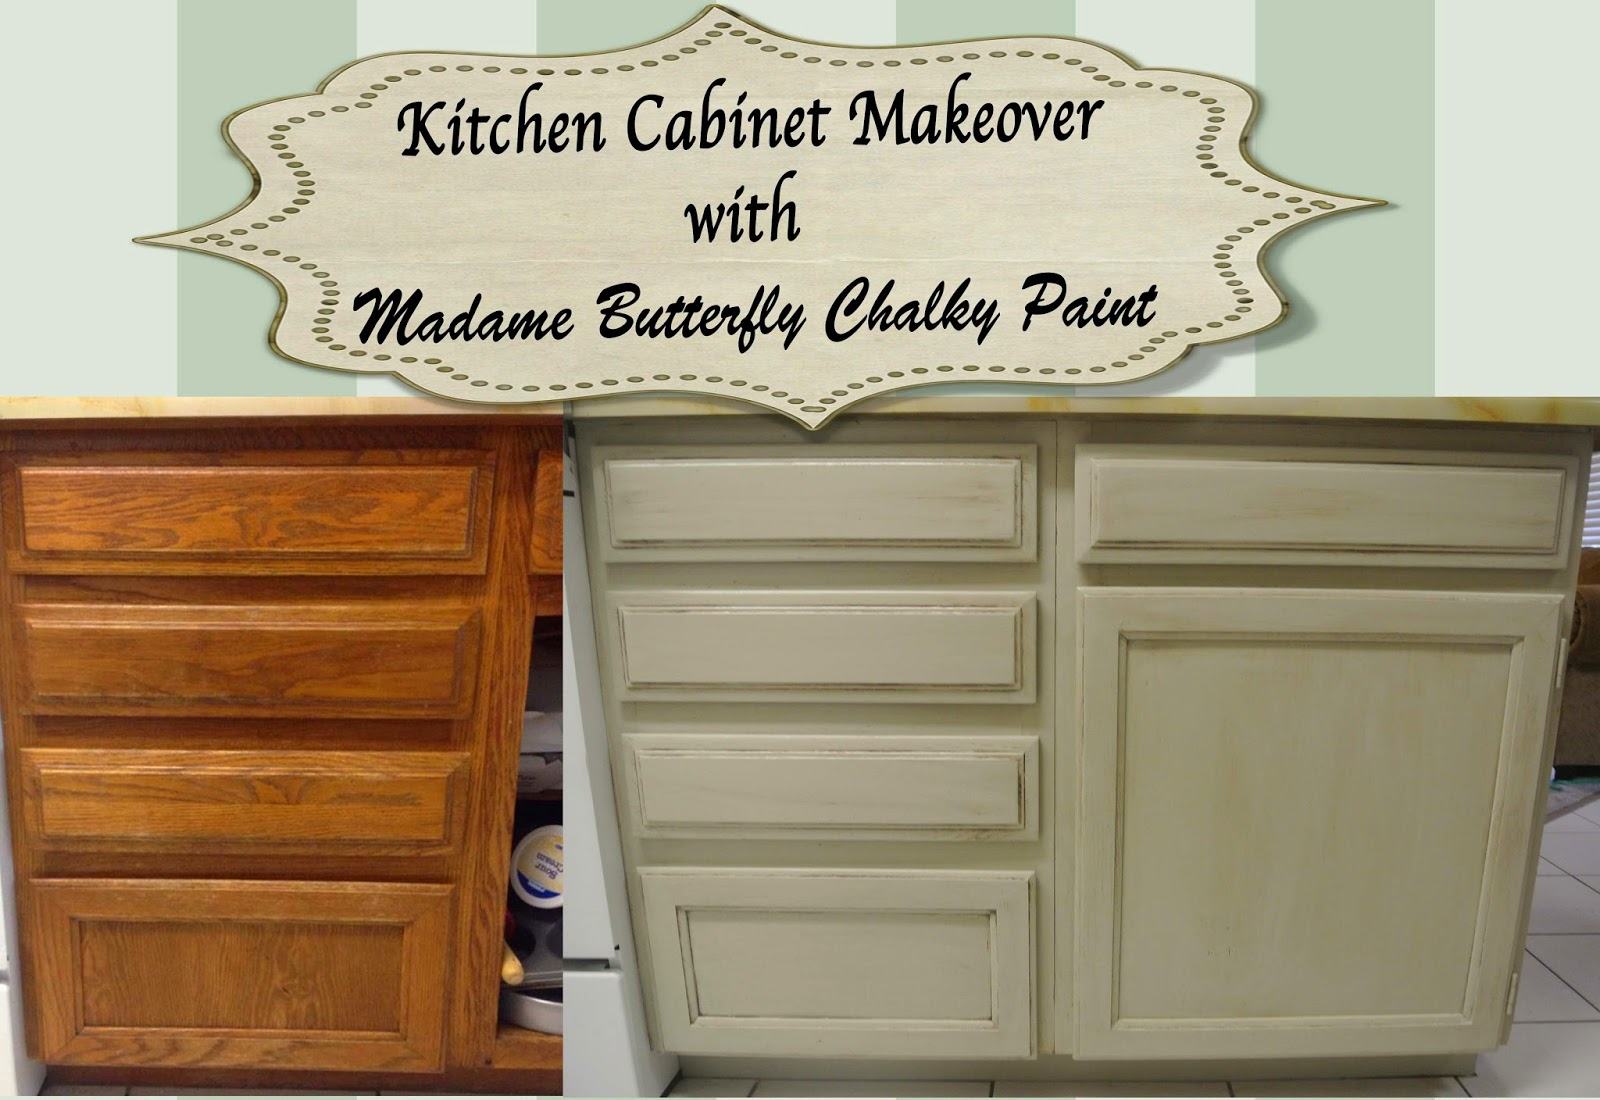 Madame butterfly chalky paint kitchen cabinet makeover for Antiquing painted kitchen cabinets